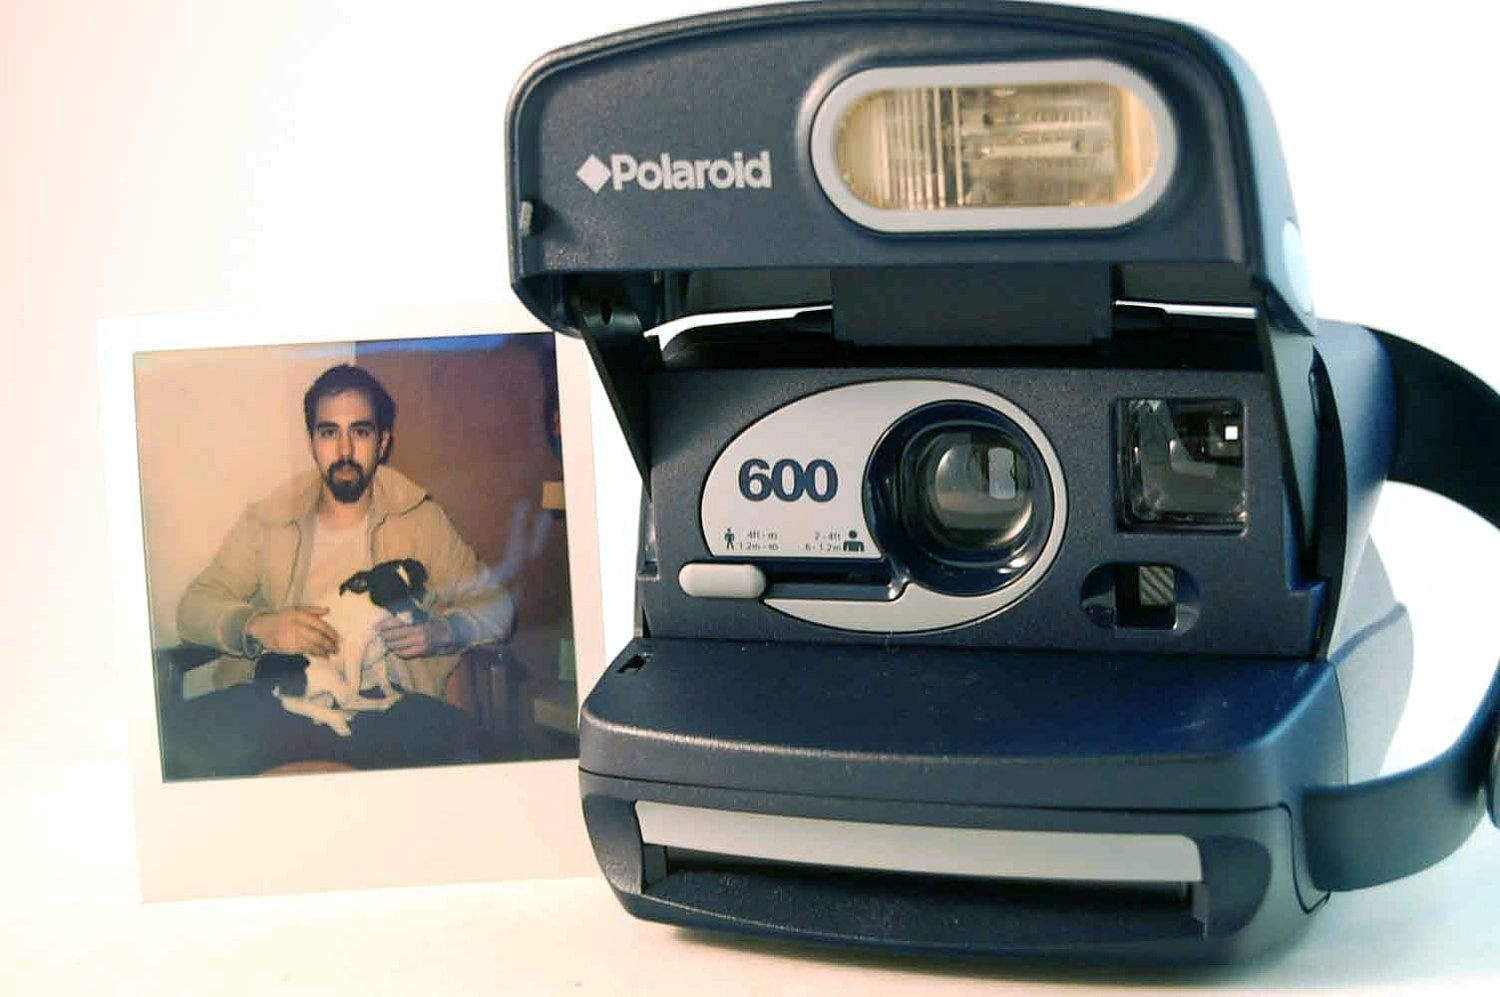 TESTED Polaroid 600 Instant Film Camera uses Impossible